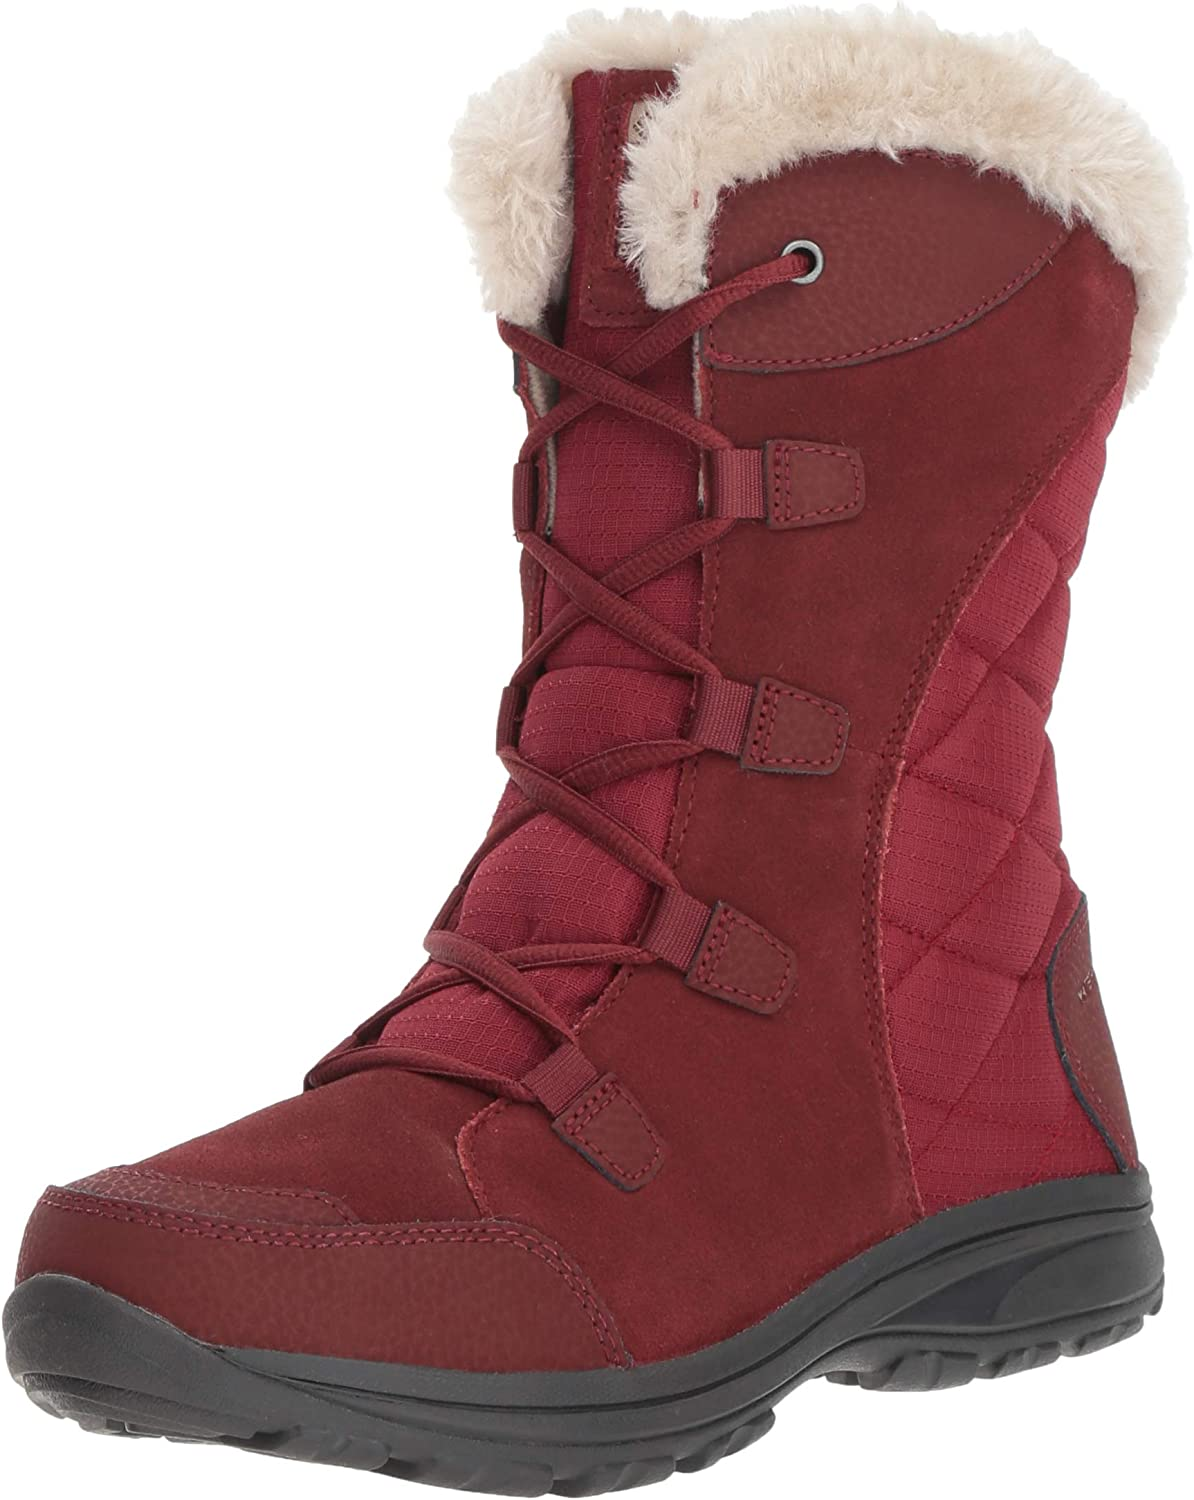 Columbia Womens Ice Maiden II Lace Cold Weather & Shearling